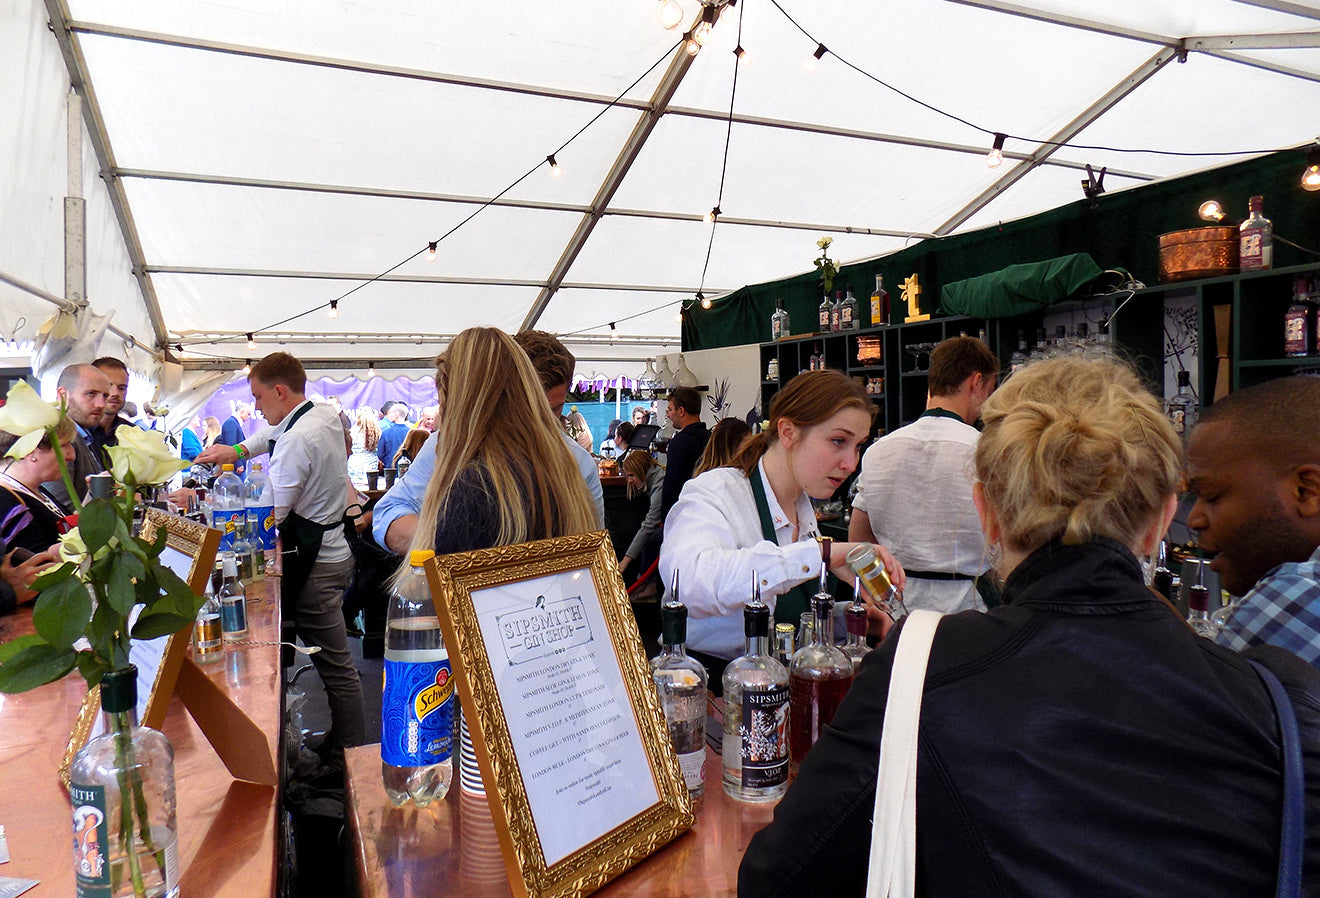 Sipsmith Gin stall at Taste of London